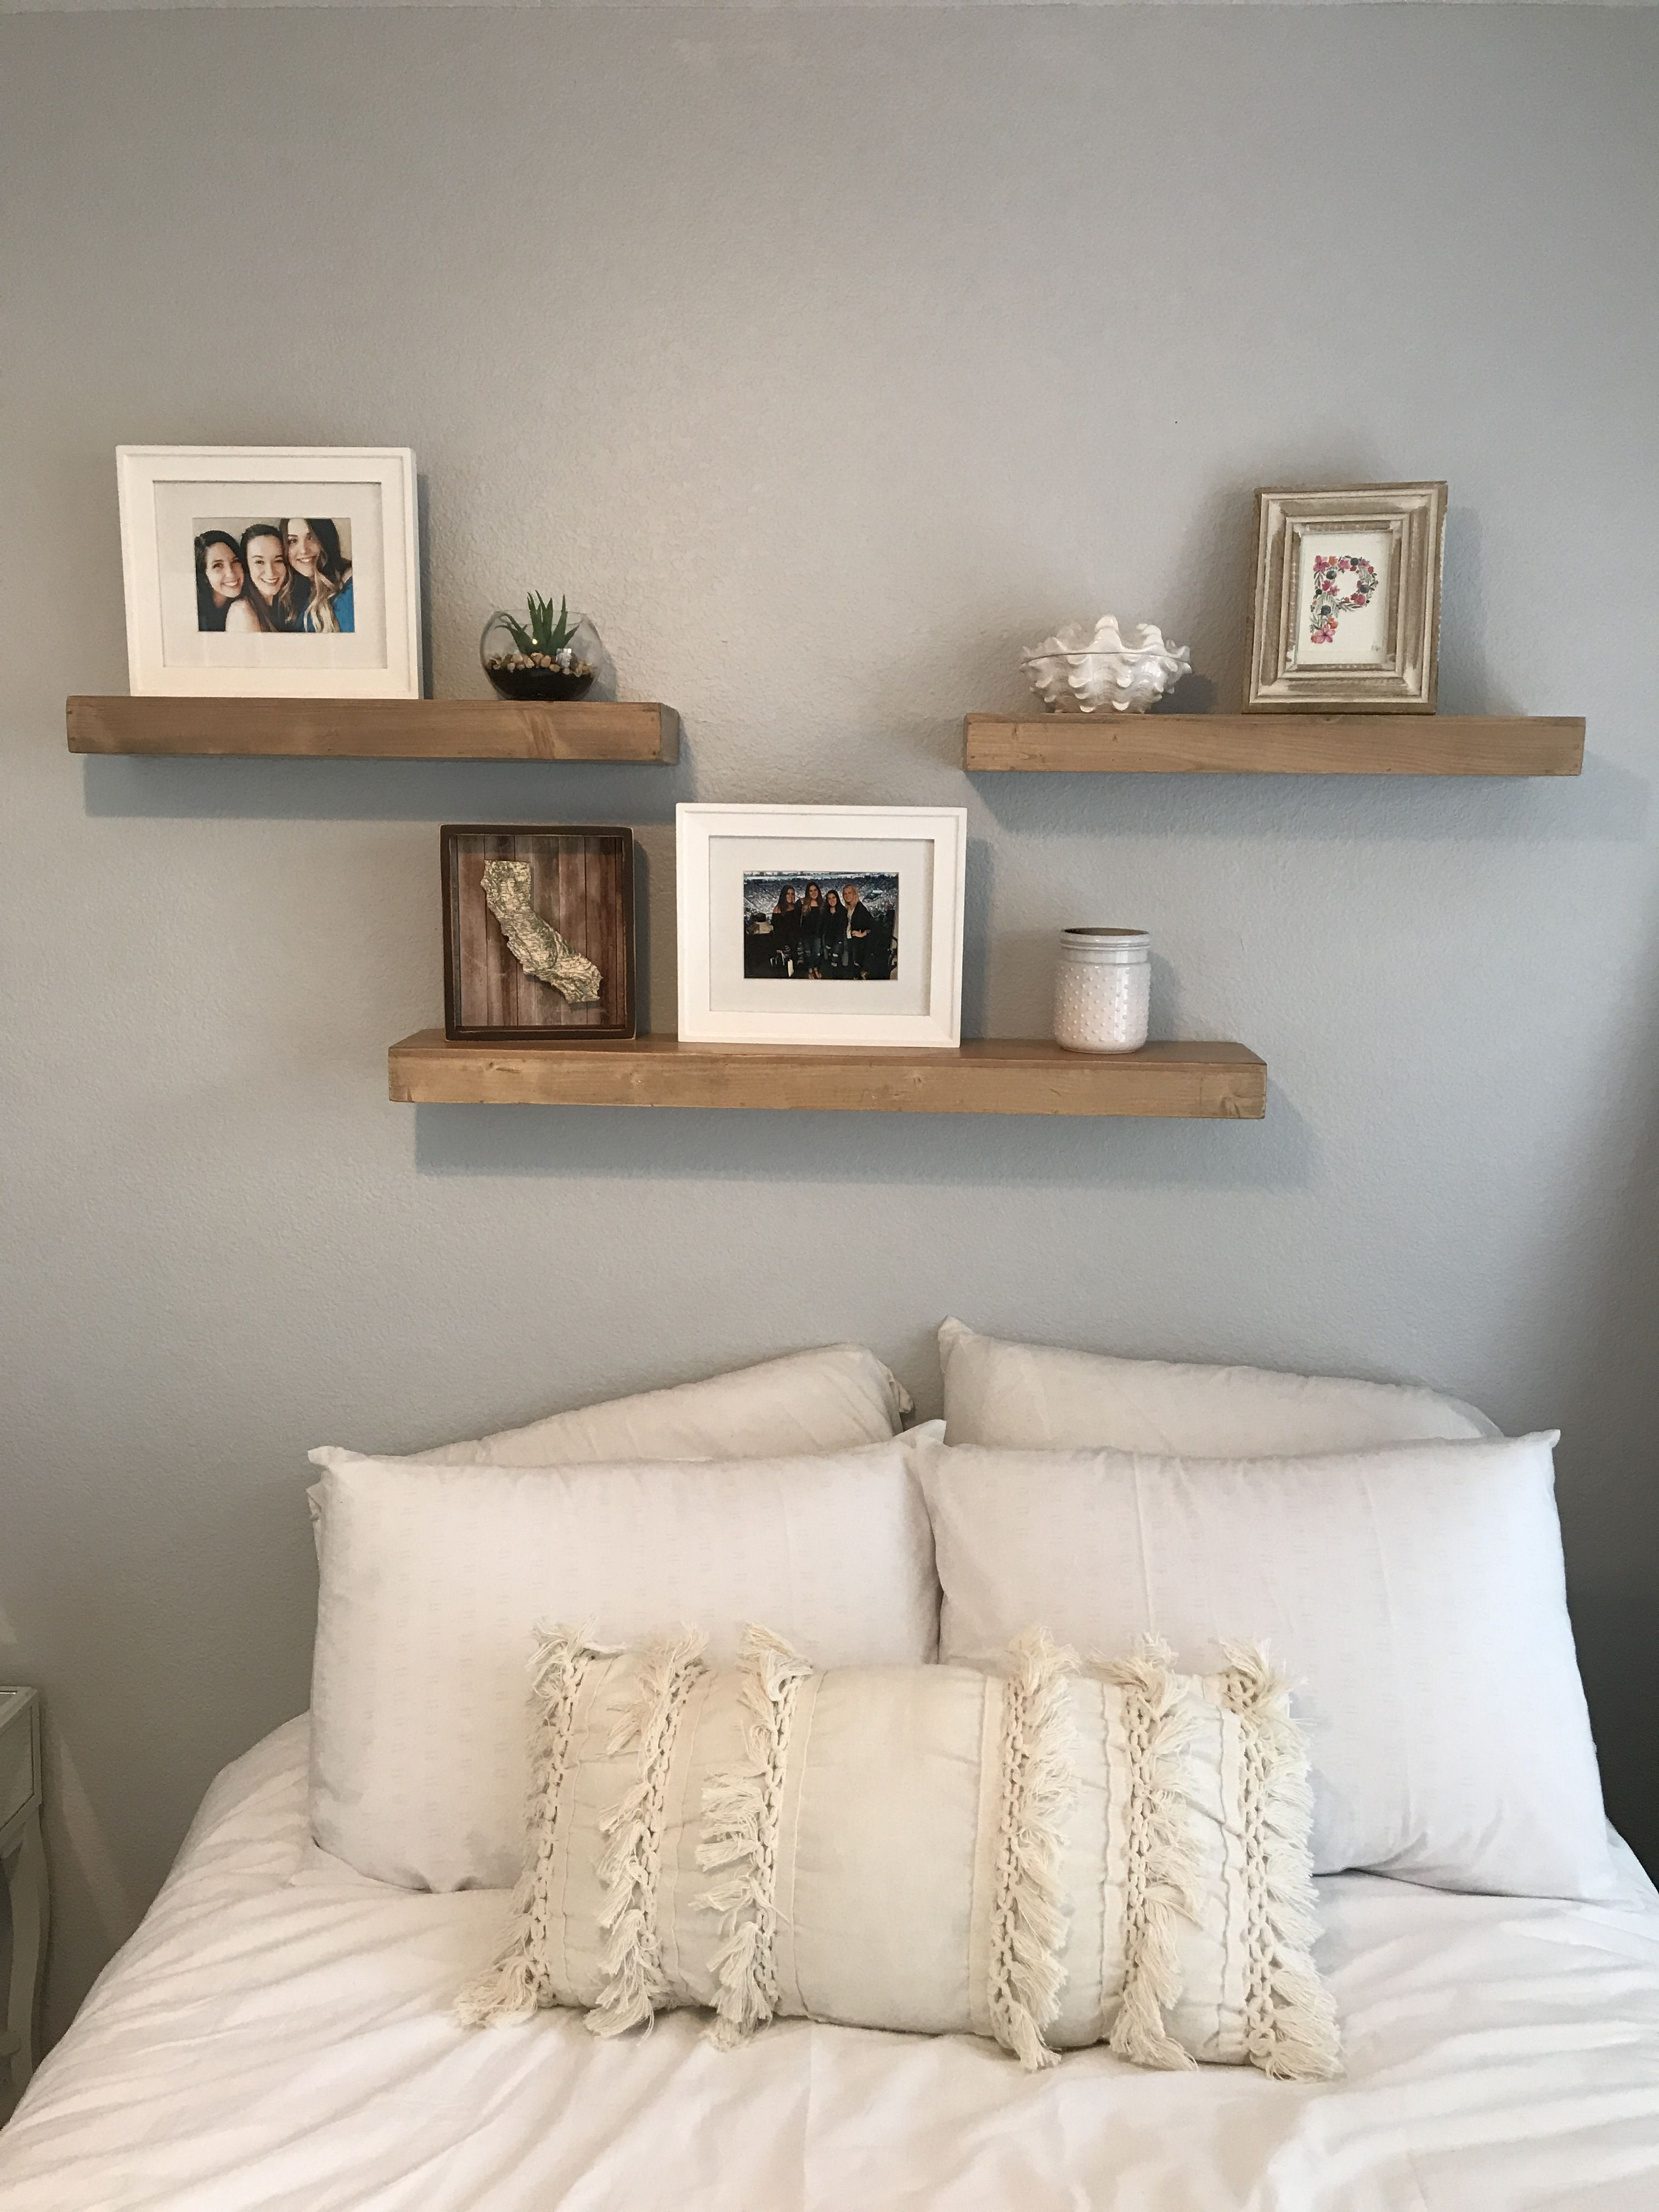 3 Shelves Above Bed White And Grey Bedroom Fun Room